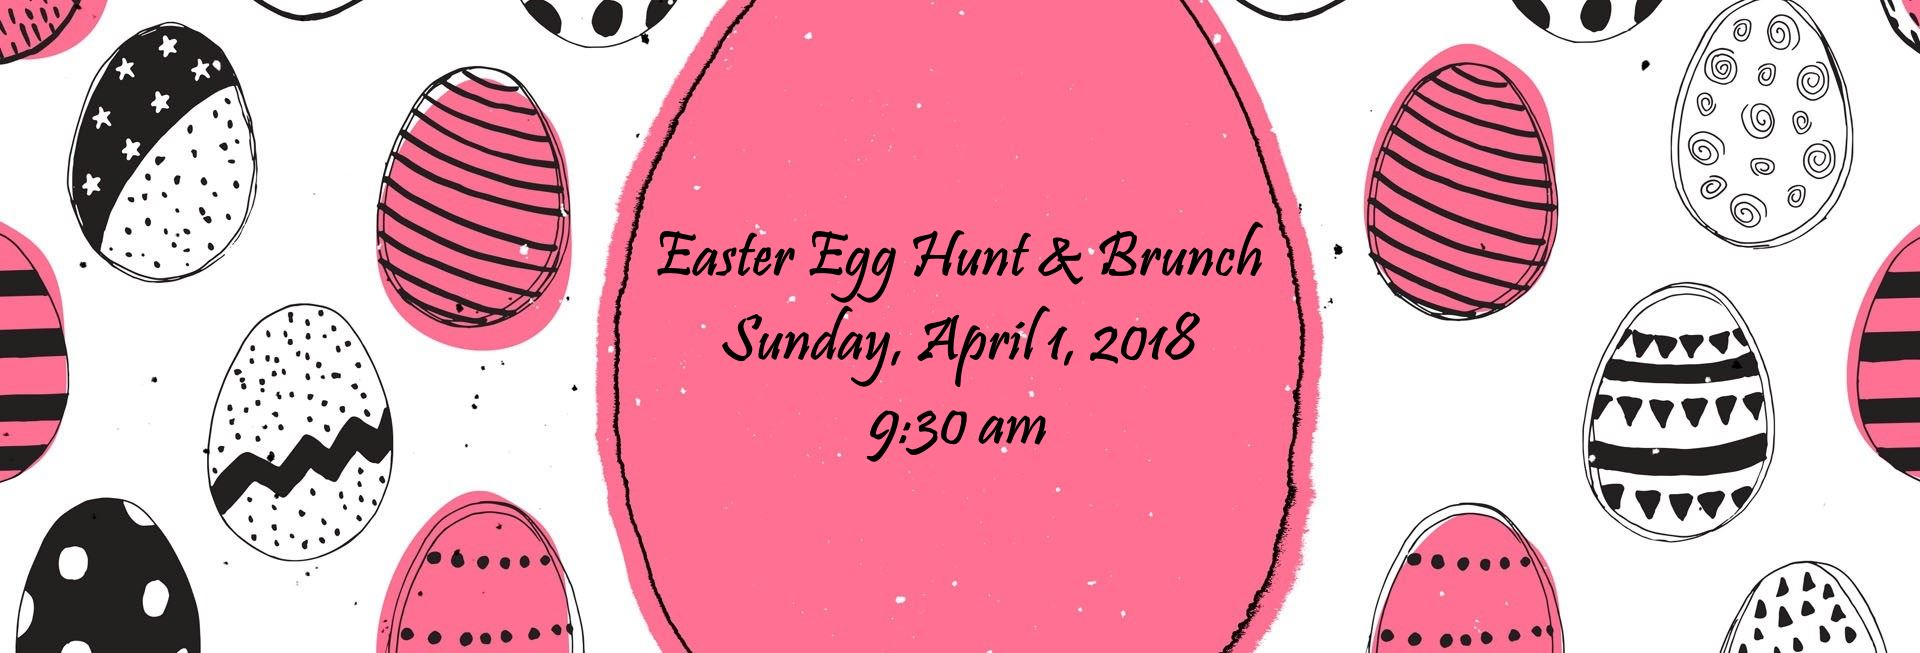 2018 Easter Egg Hunt and Brunch